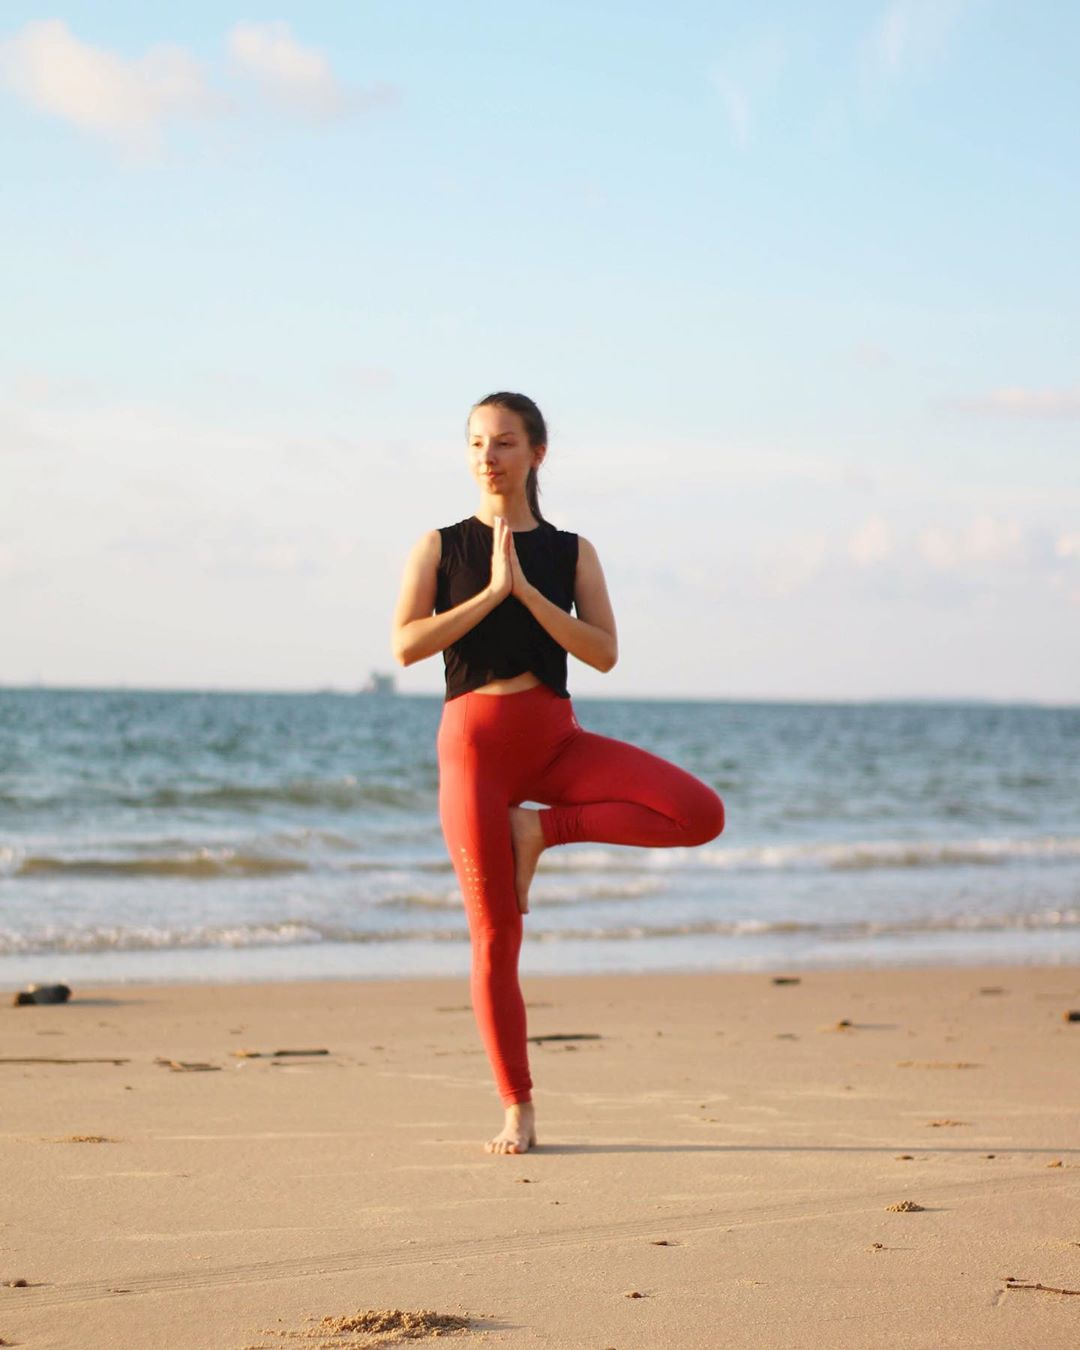 Vrikshasana or Tree Pose